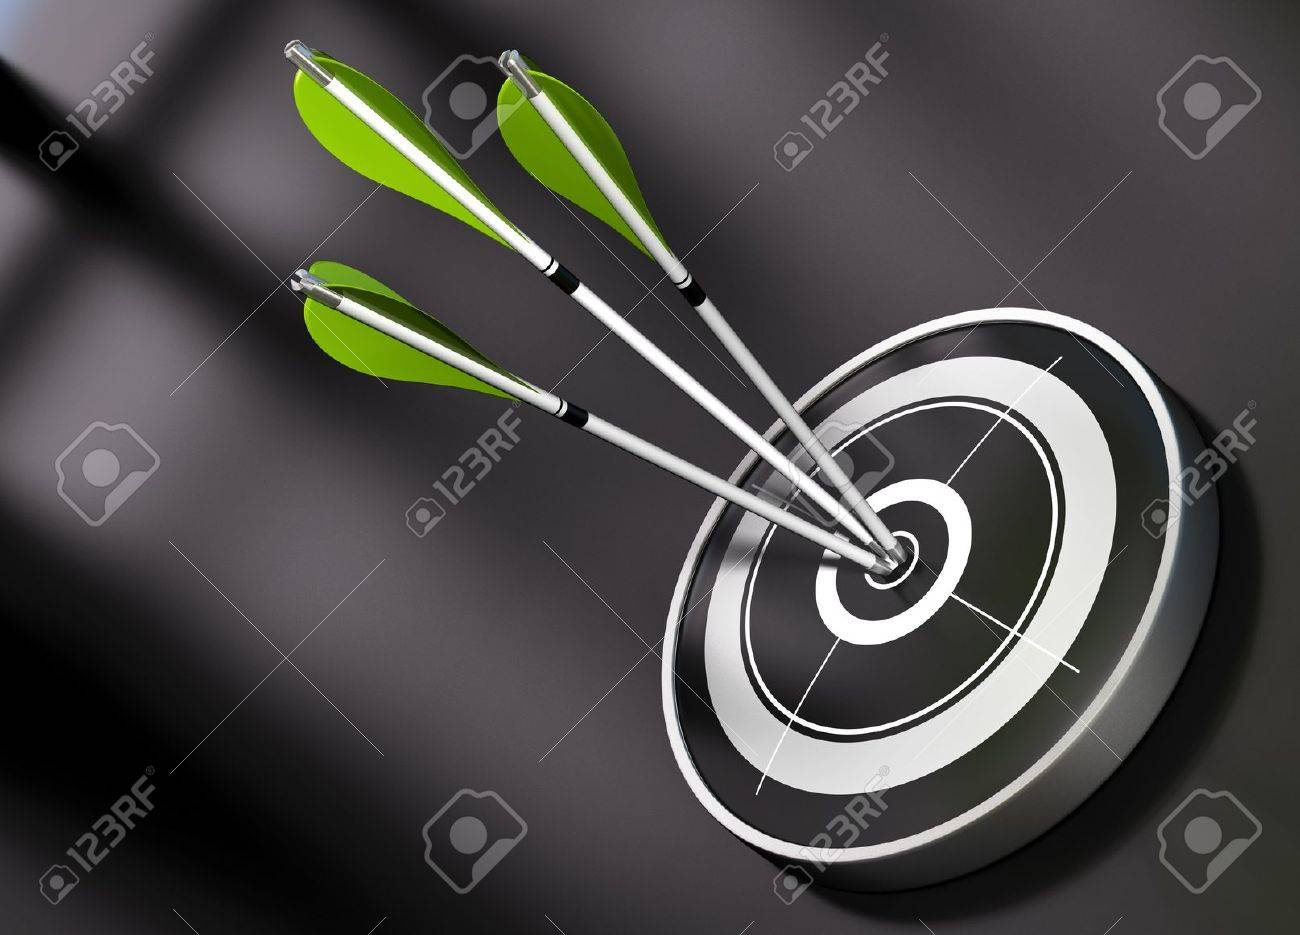 3 gren arrows hitting the center of a black target, concept of partnership over a black background Stock Photo - 11633686